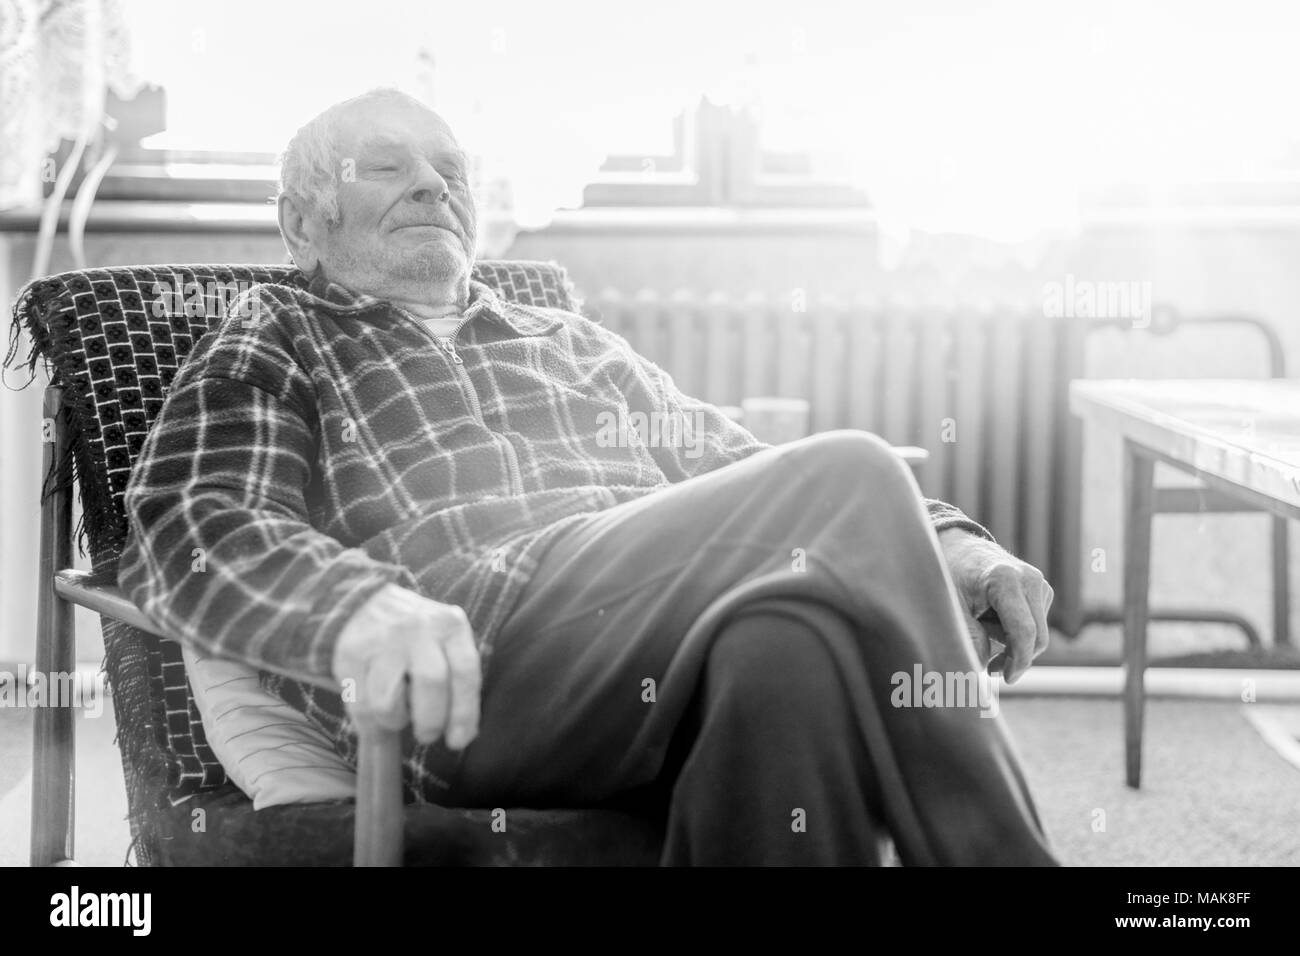 Handsome 80 plus year old senior man portrait. Black and white full body image of elderly man sitting in an armchair in a nursing home. - Stock Image